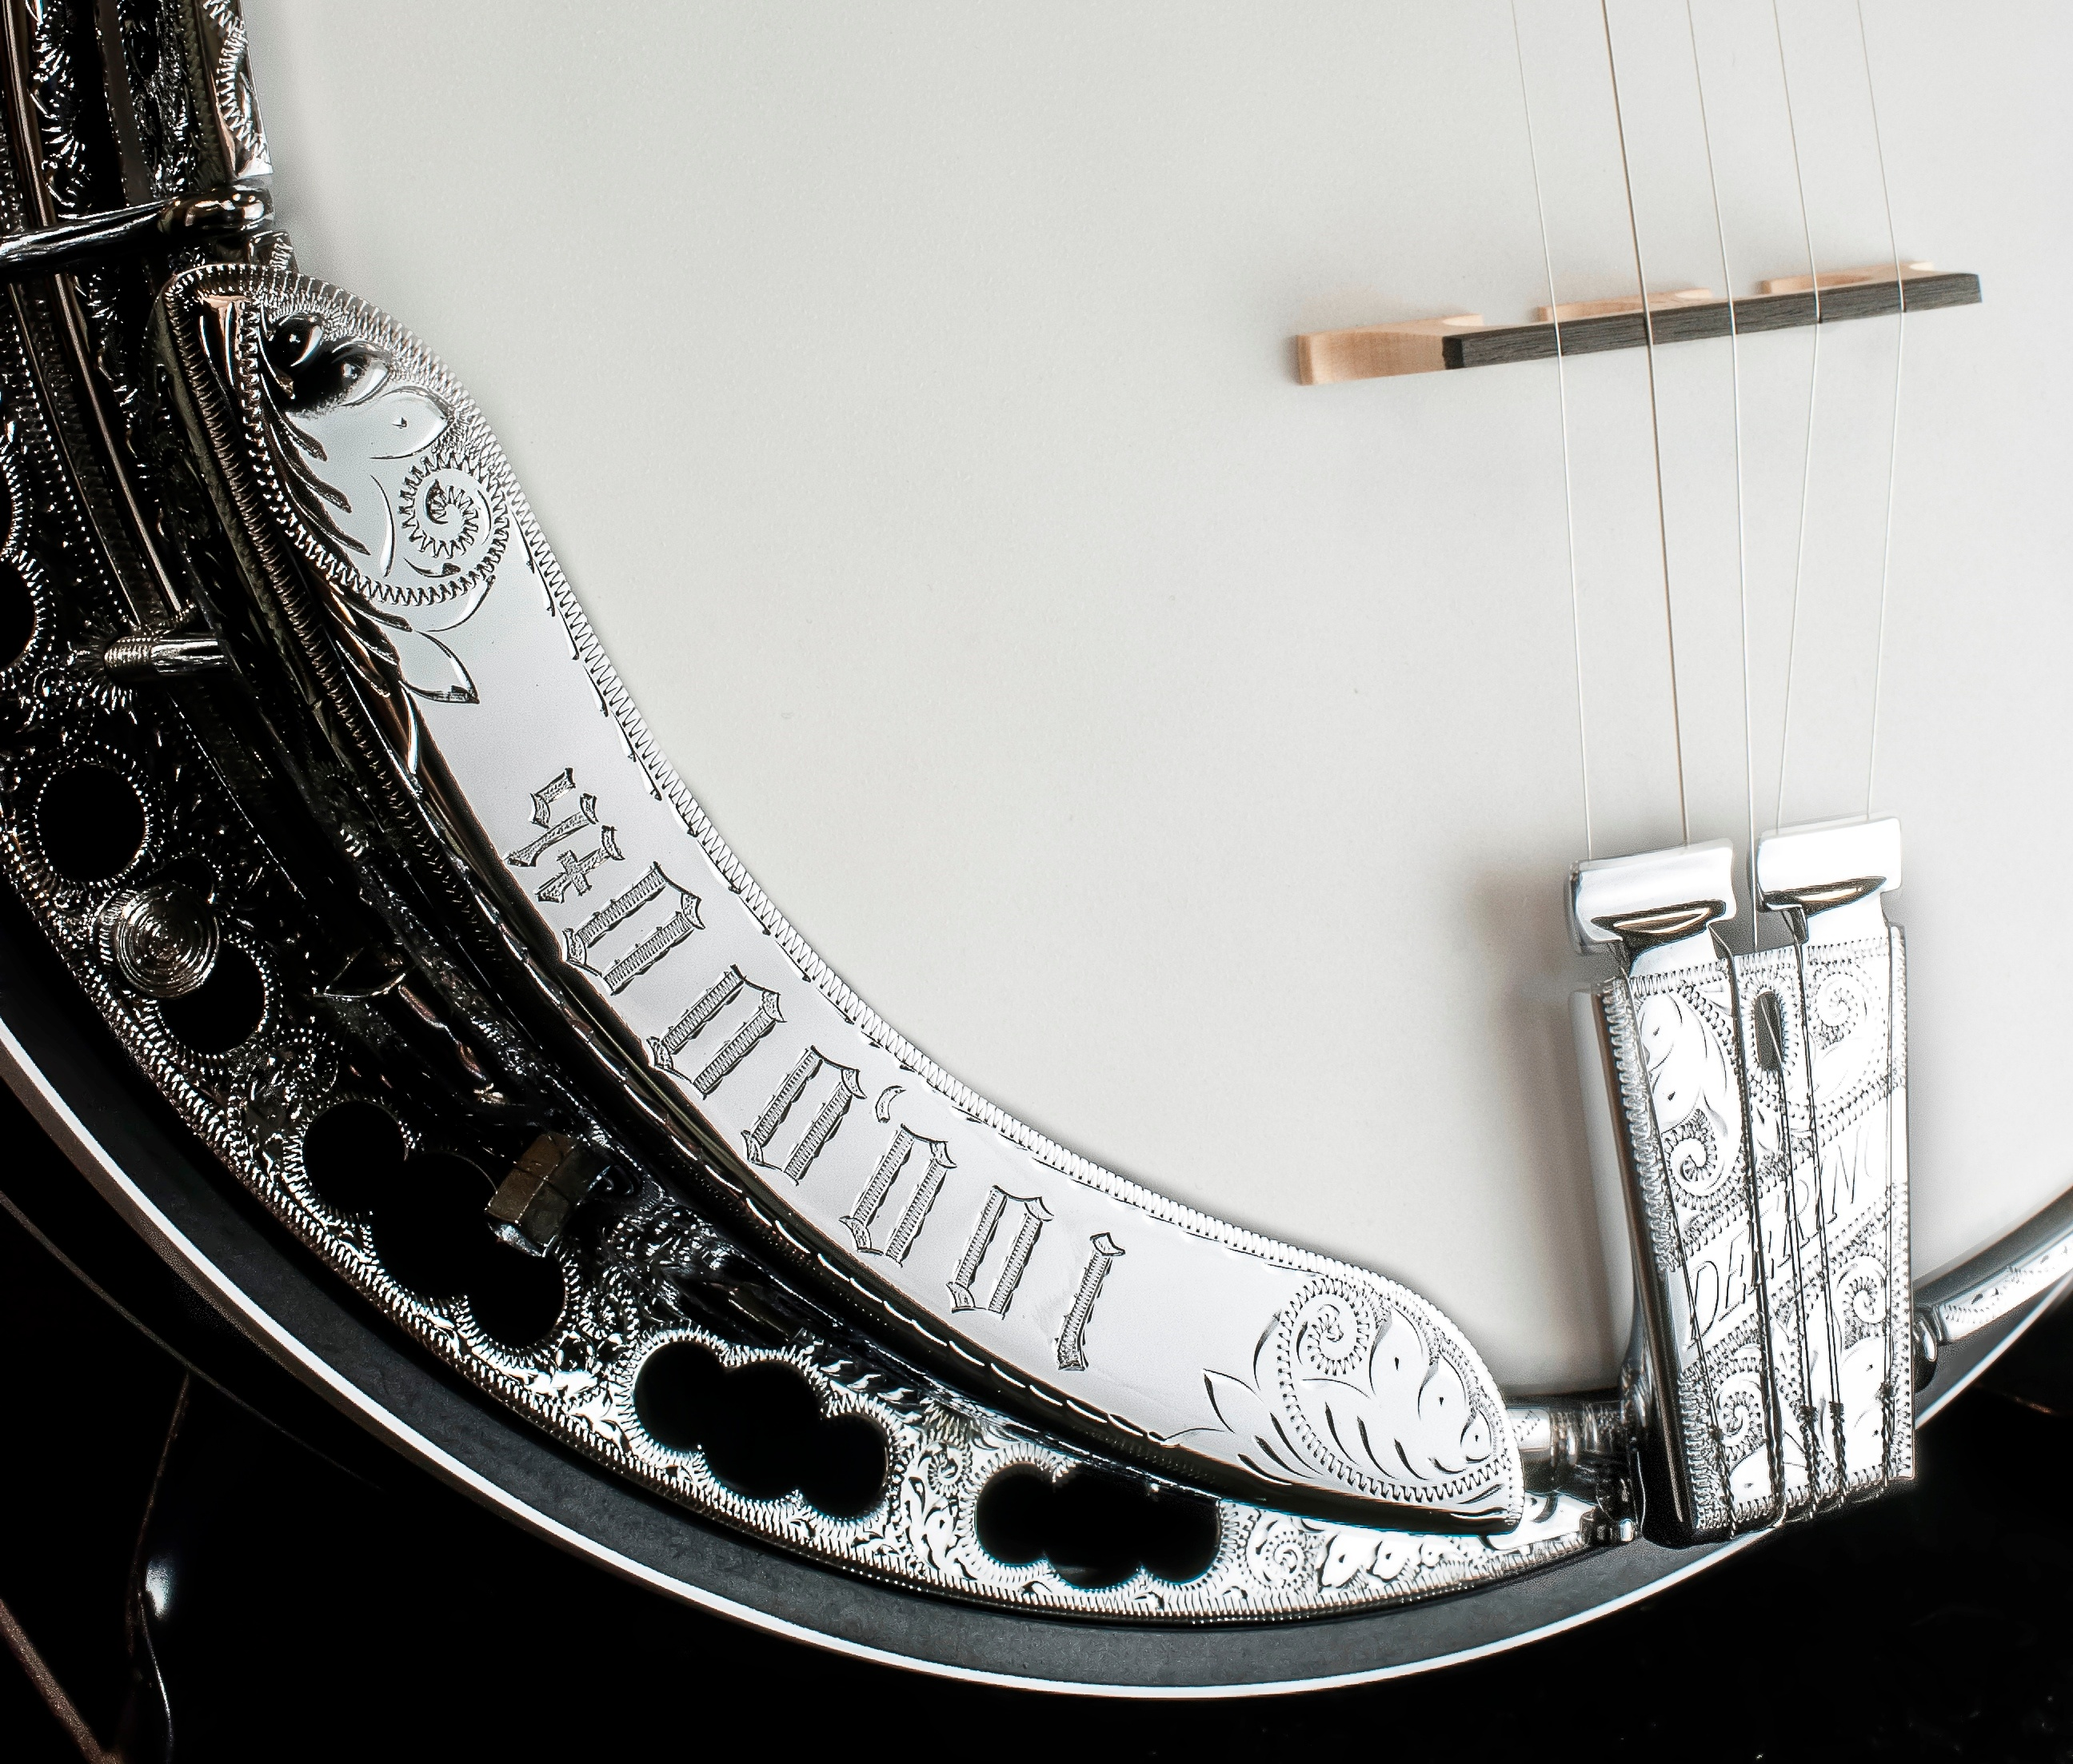 IBMA Trust Fund Auction of Deering Banjo Company's 100,000th Banjo!